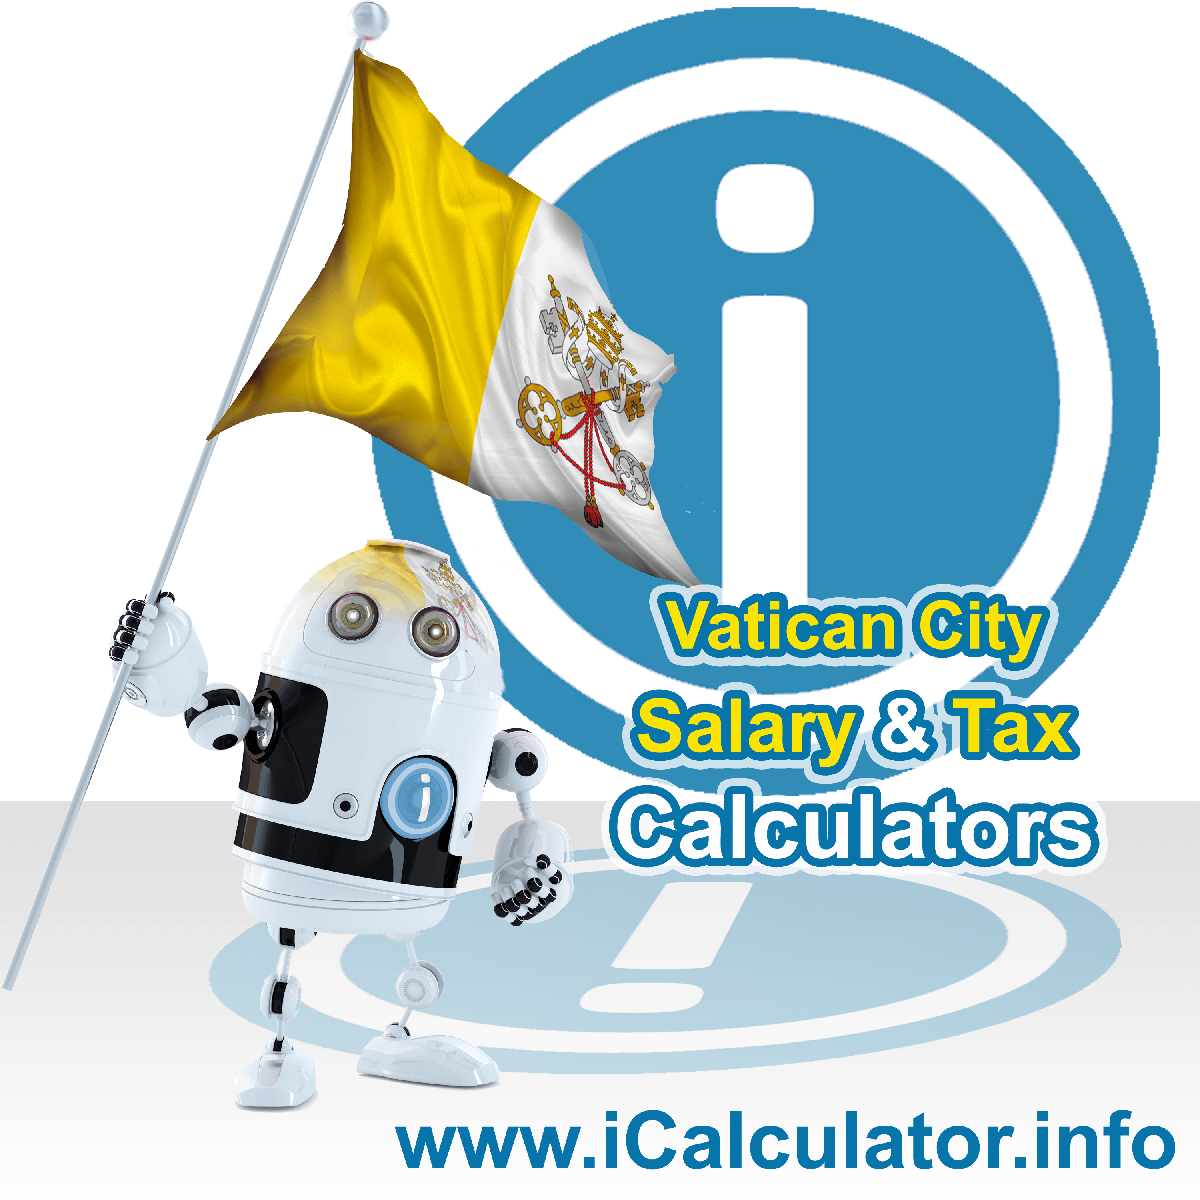 Vatican City Wage Calculator. This image shows the Vatican City flag and information relating to the tax formula for the Vatican City Tax Calculator